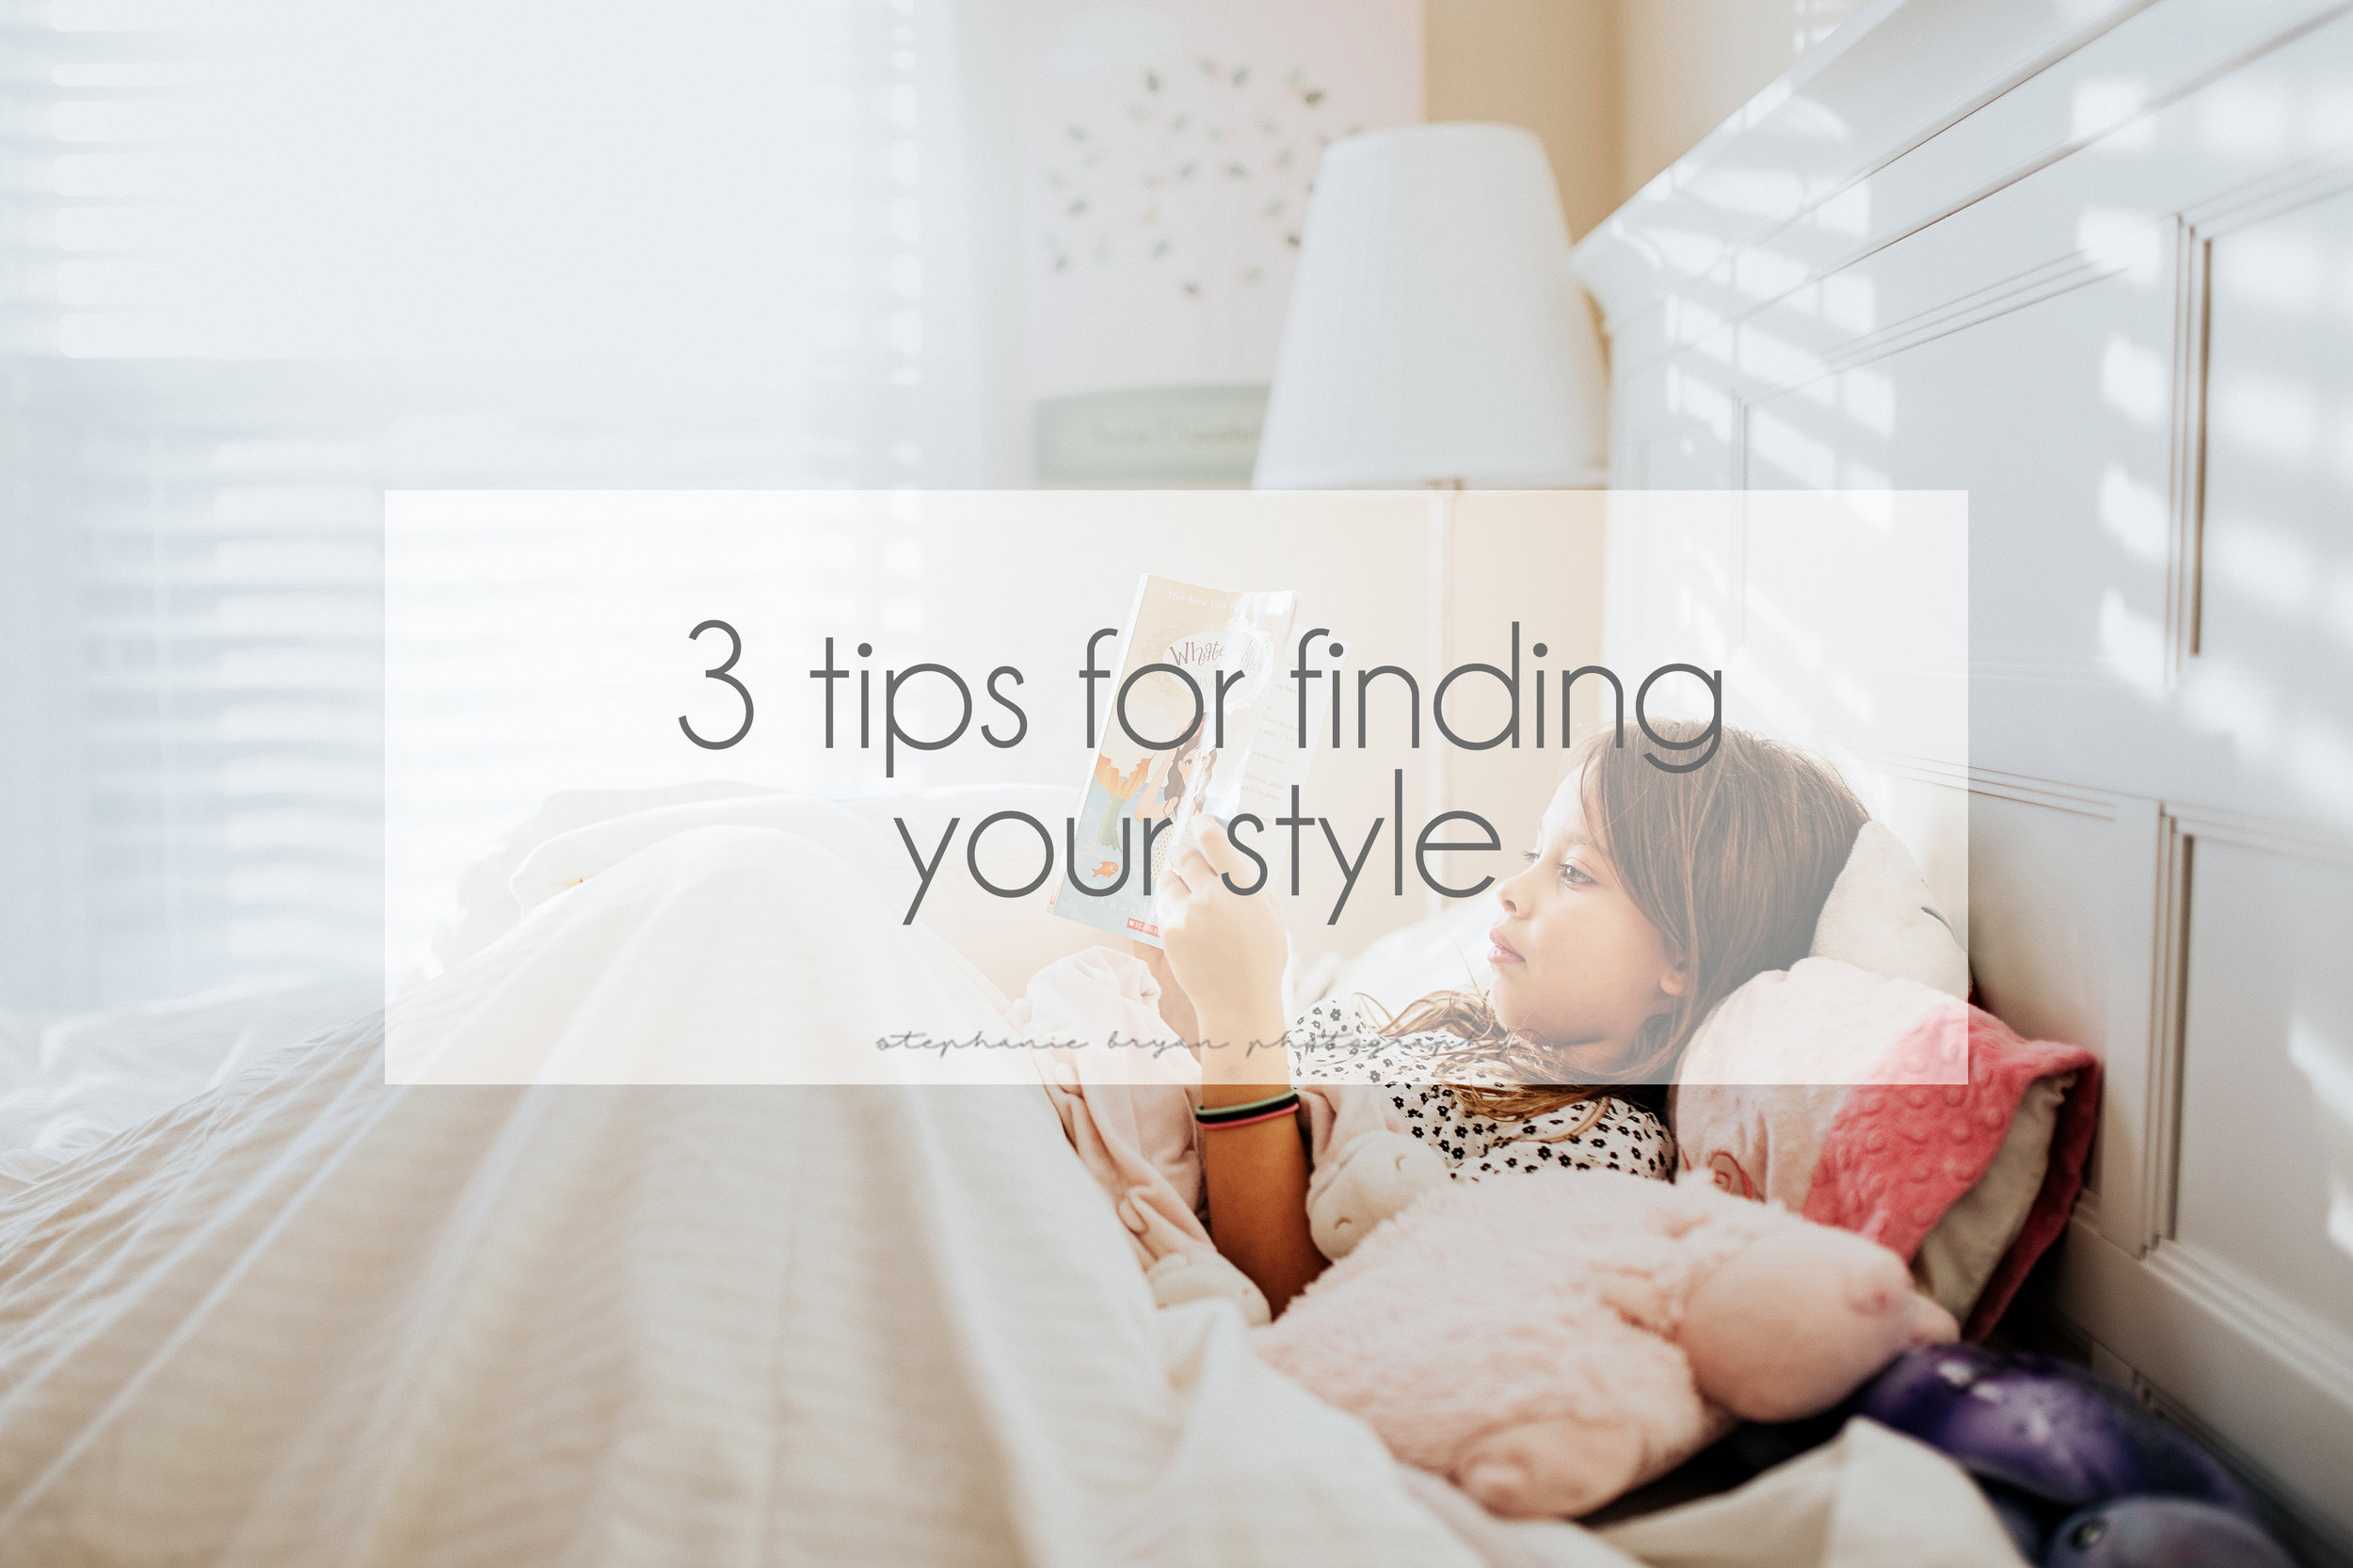 Stephanie Bryan Photography - 3 tips for finding your style